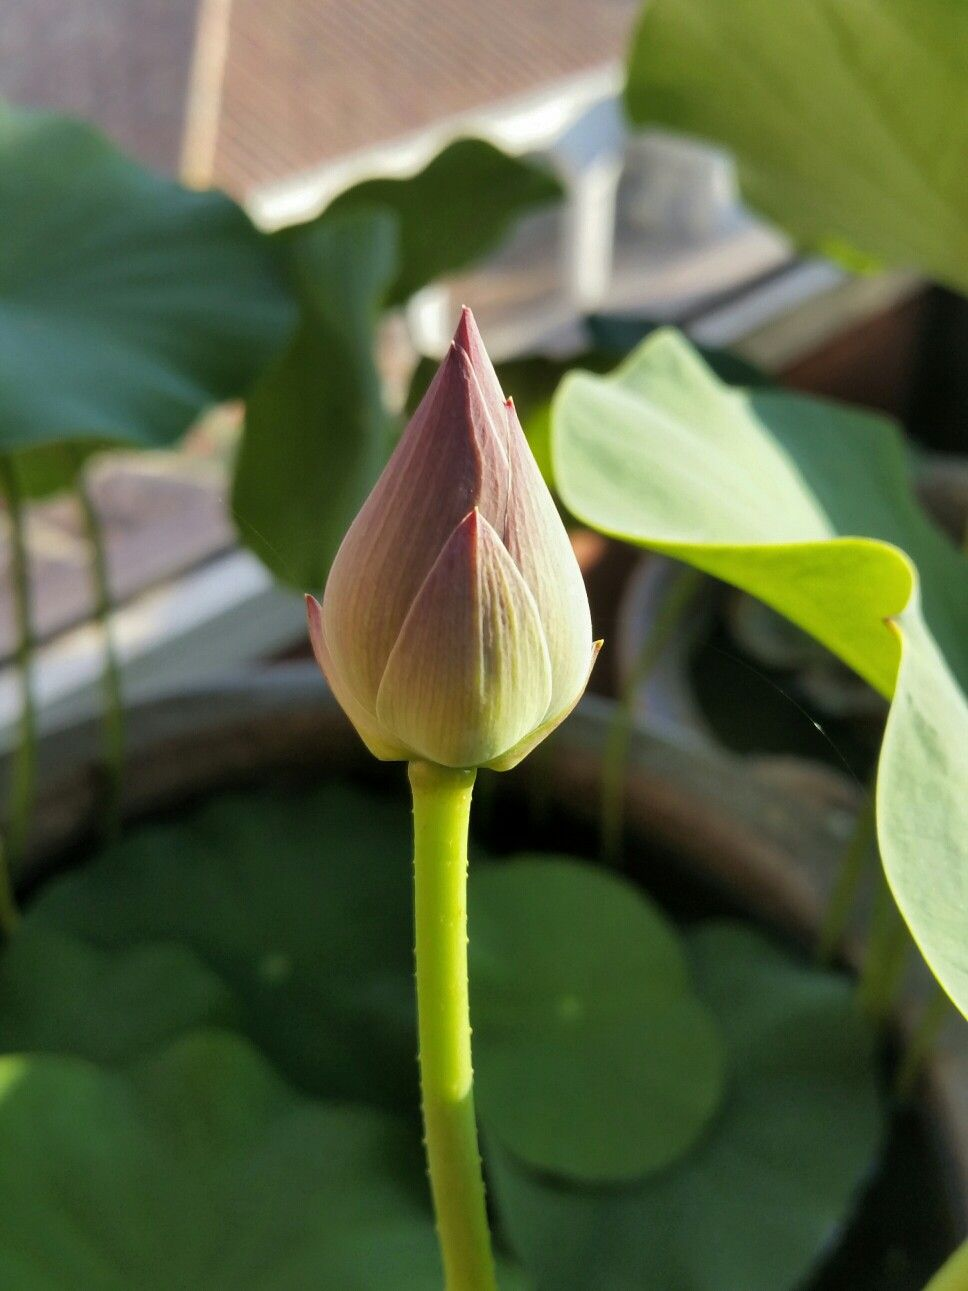 My first lotusflower soon will open plants gardens pinterest my first lotusflower soon will open izmirmasajfo